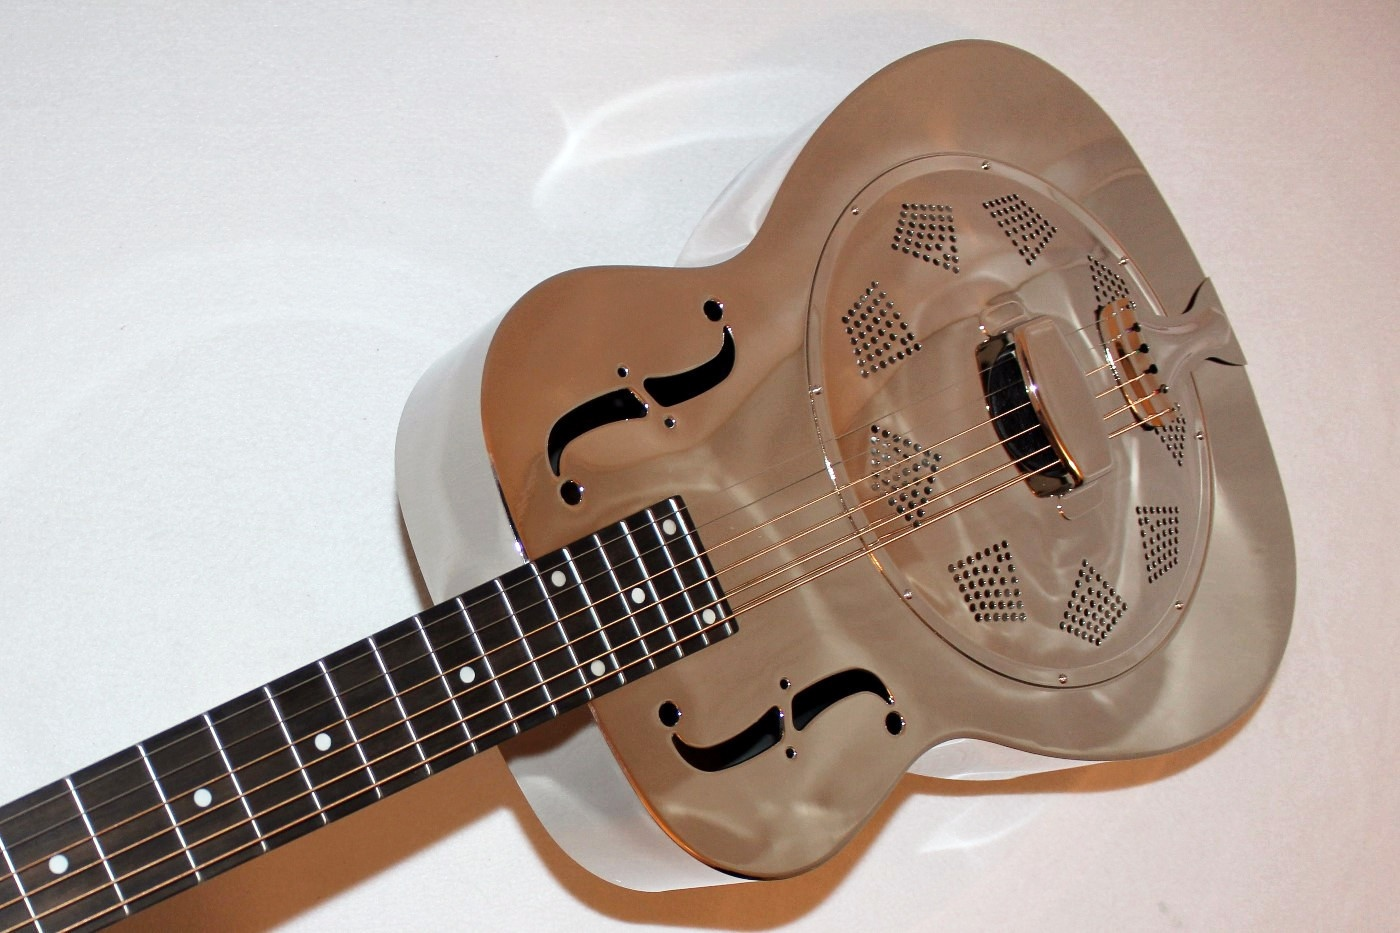 dobro hound dog m 14 metalbody nickel acoustic resonator guitar. Black Bedroom Furniture Sets. Home Design Ideas